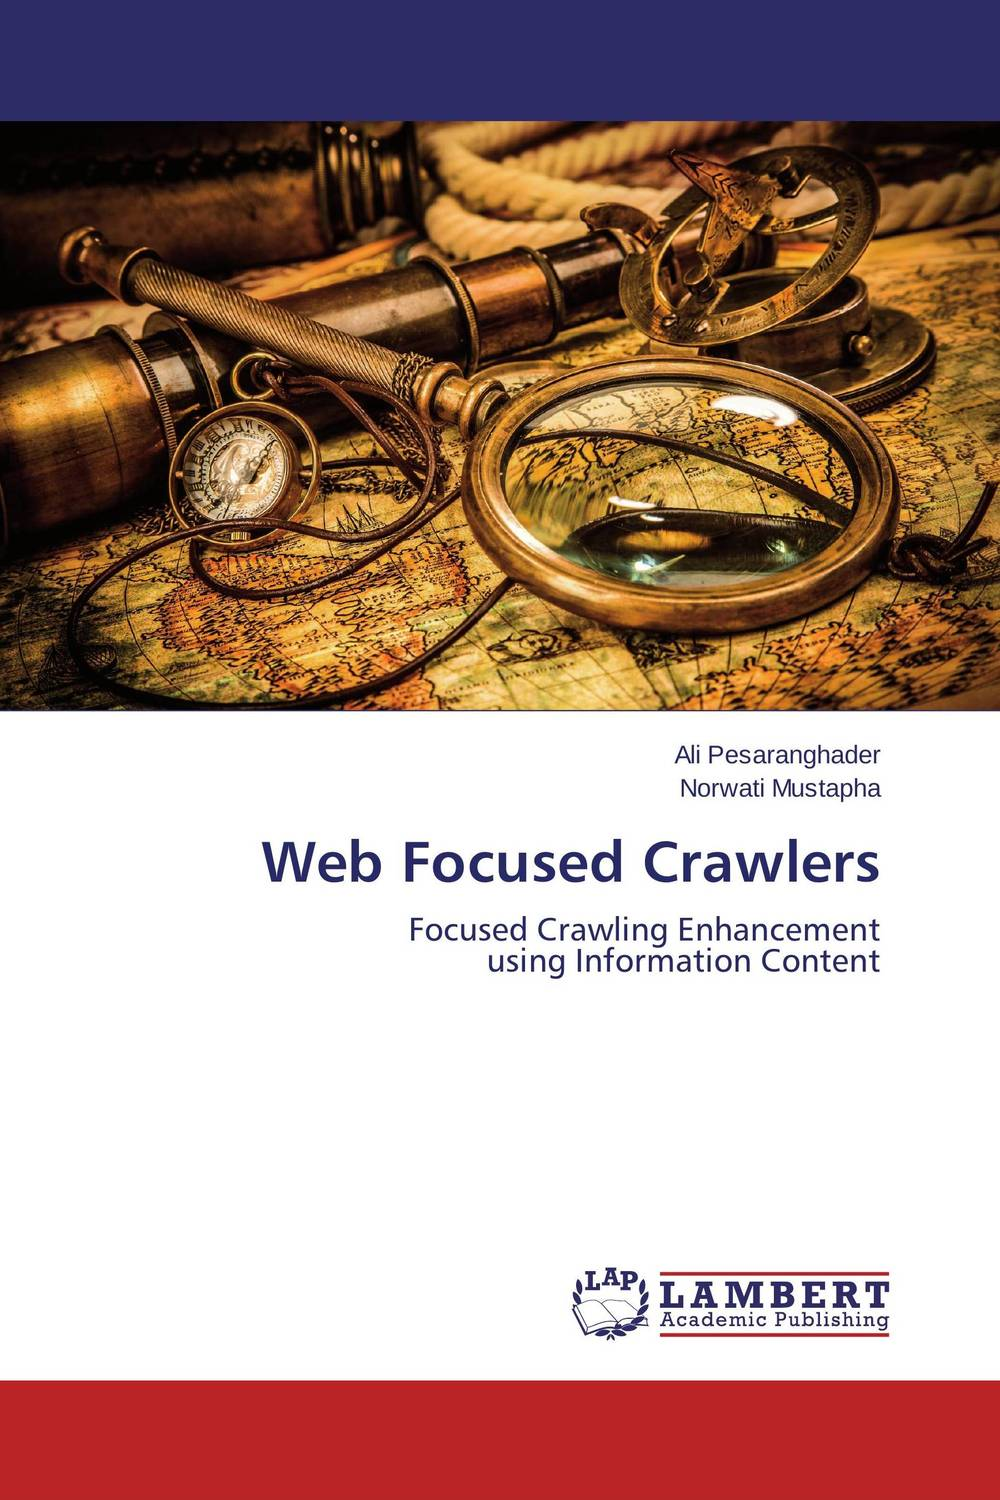 Web Focused Crawlers